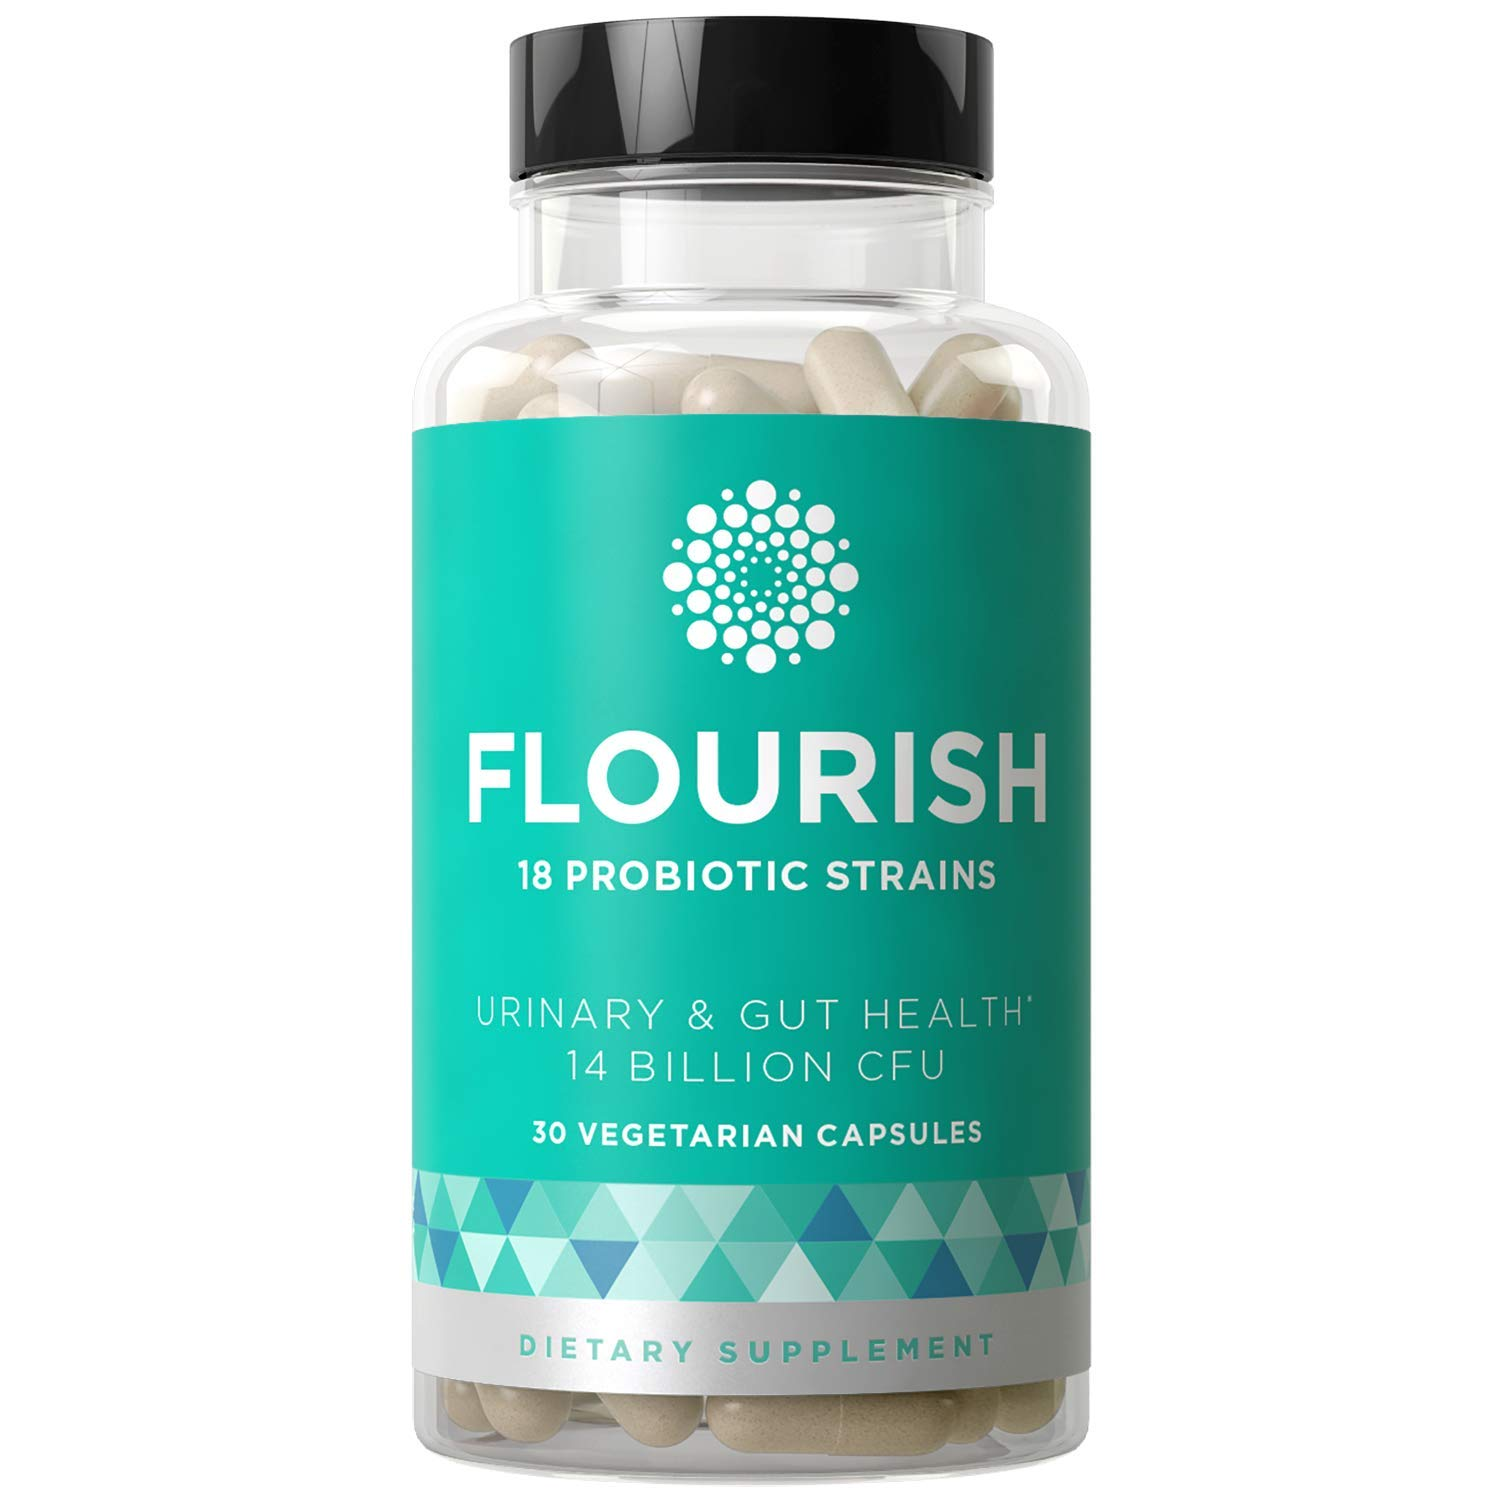 Flourish Probiotics Women - Gut & Digestive Health, Urinary Tract, Prenatal & Pregnancy - 18 Potent Strains, 14 Billion CFU, Lactobacillus, Saccharomyces, Prebiotic - 30 Vegetarian Capsules